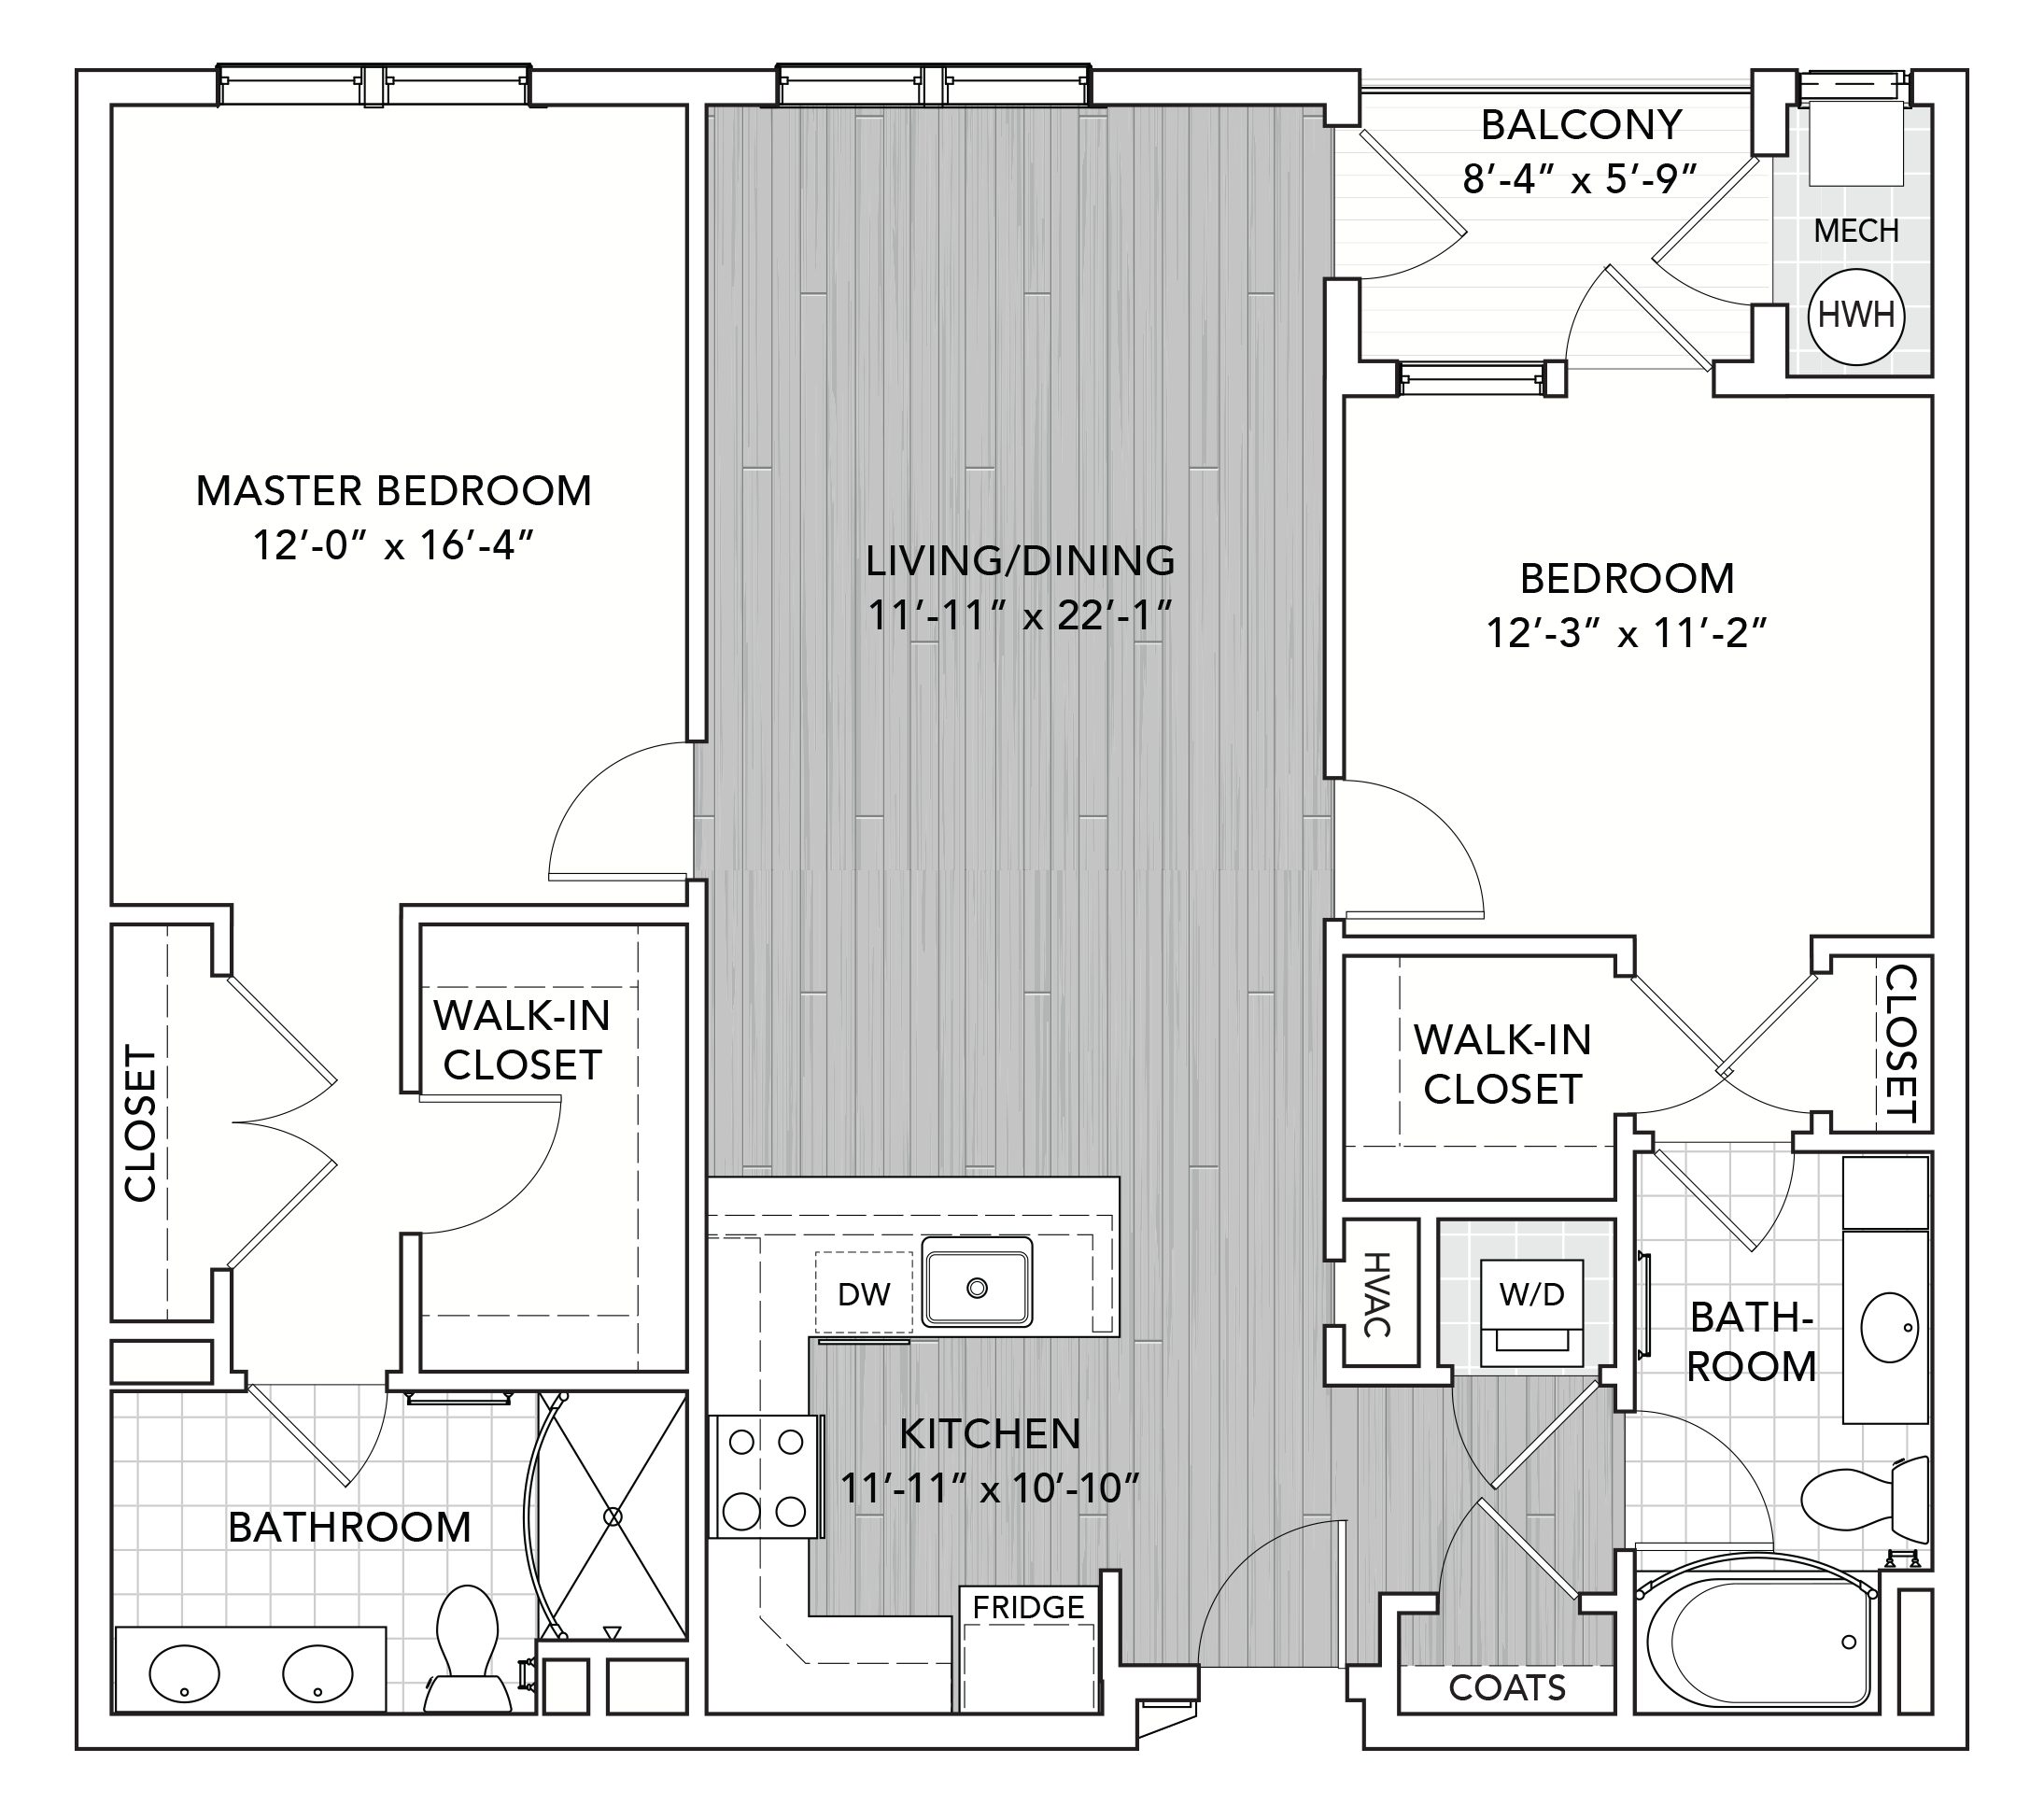 P0655013 parksquare b7 1241 2 floorplan